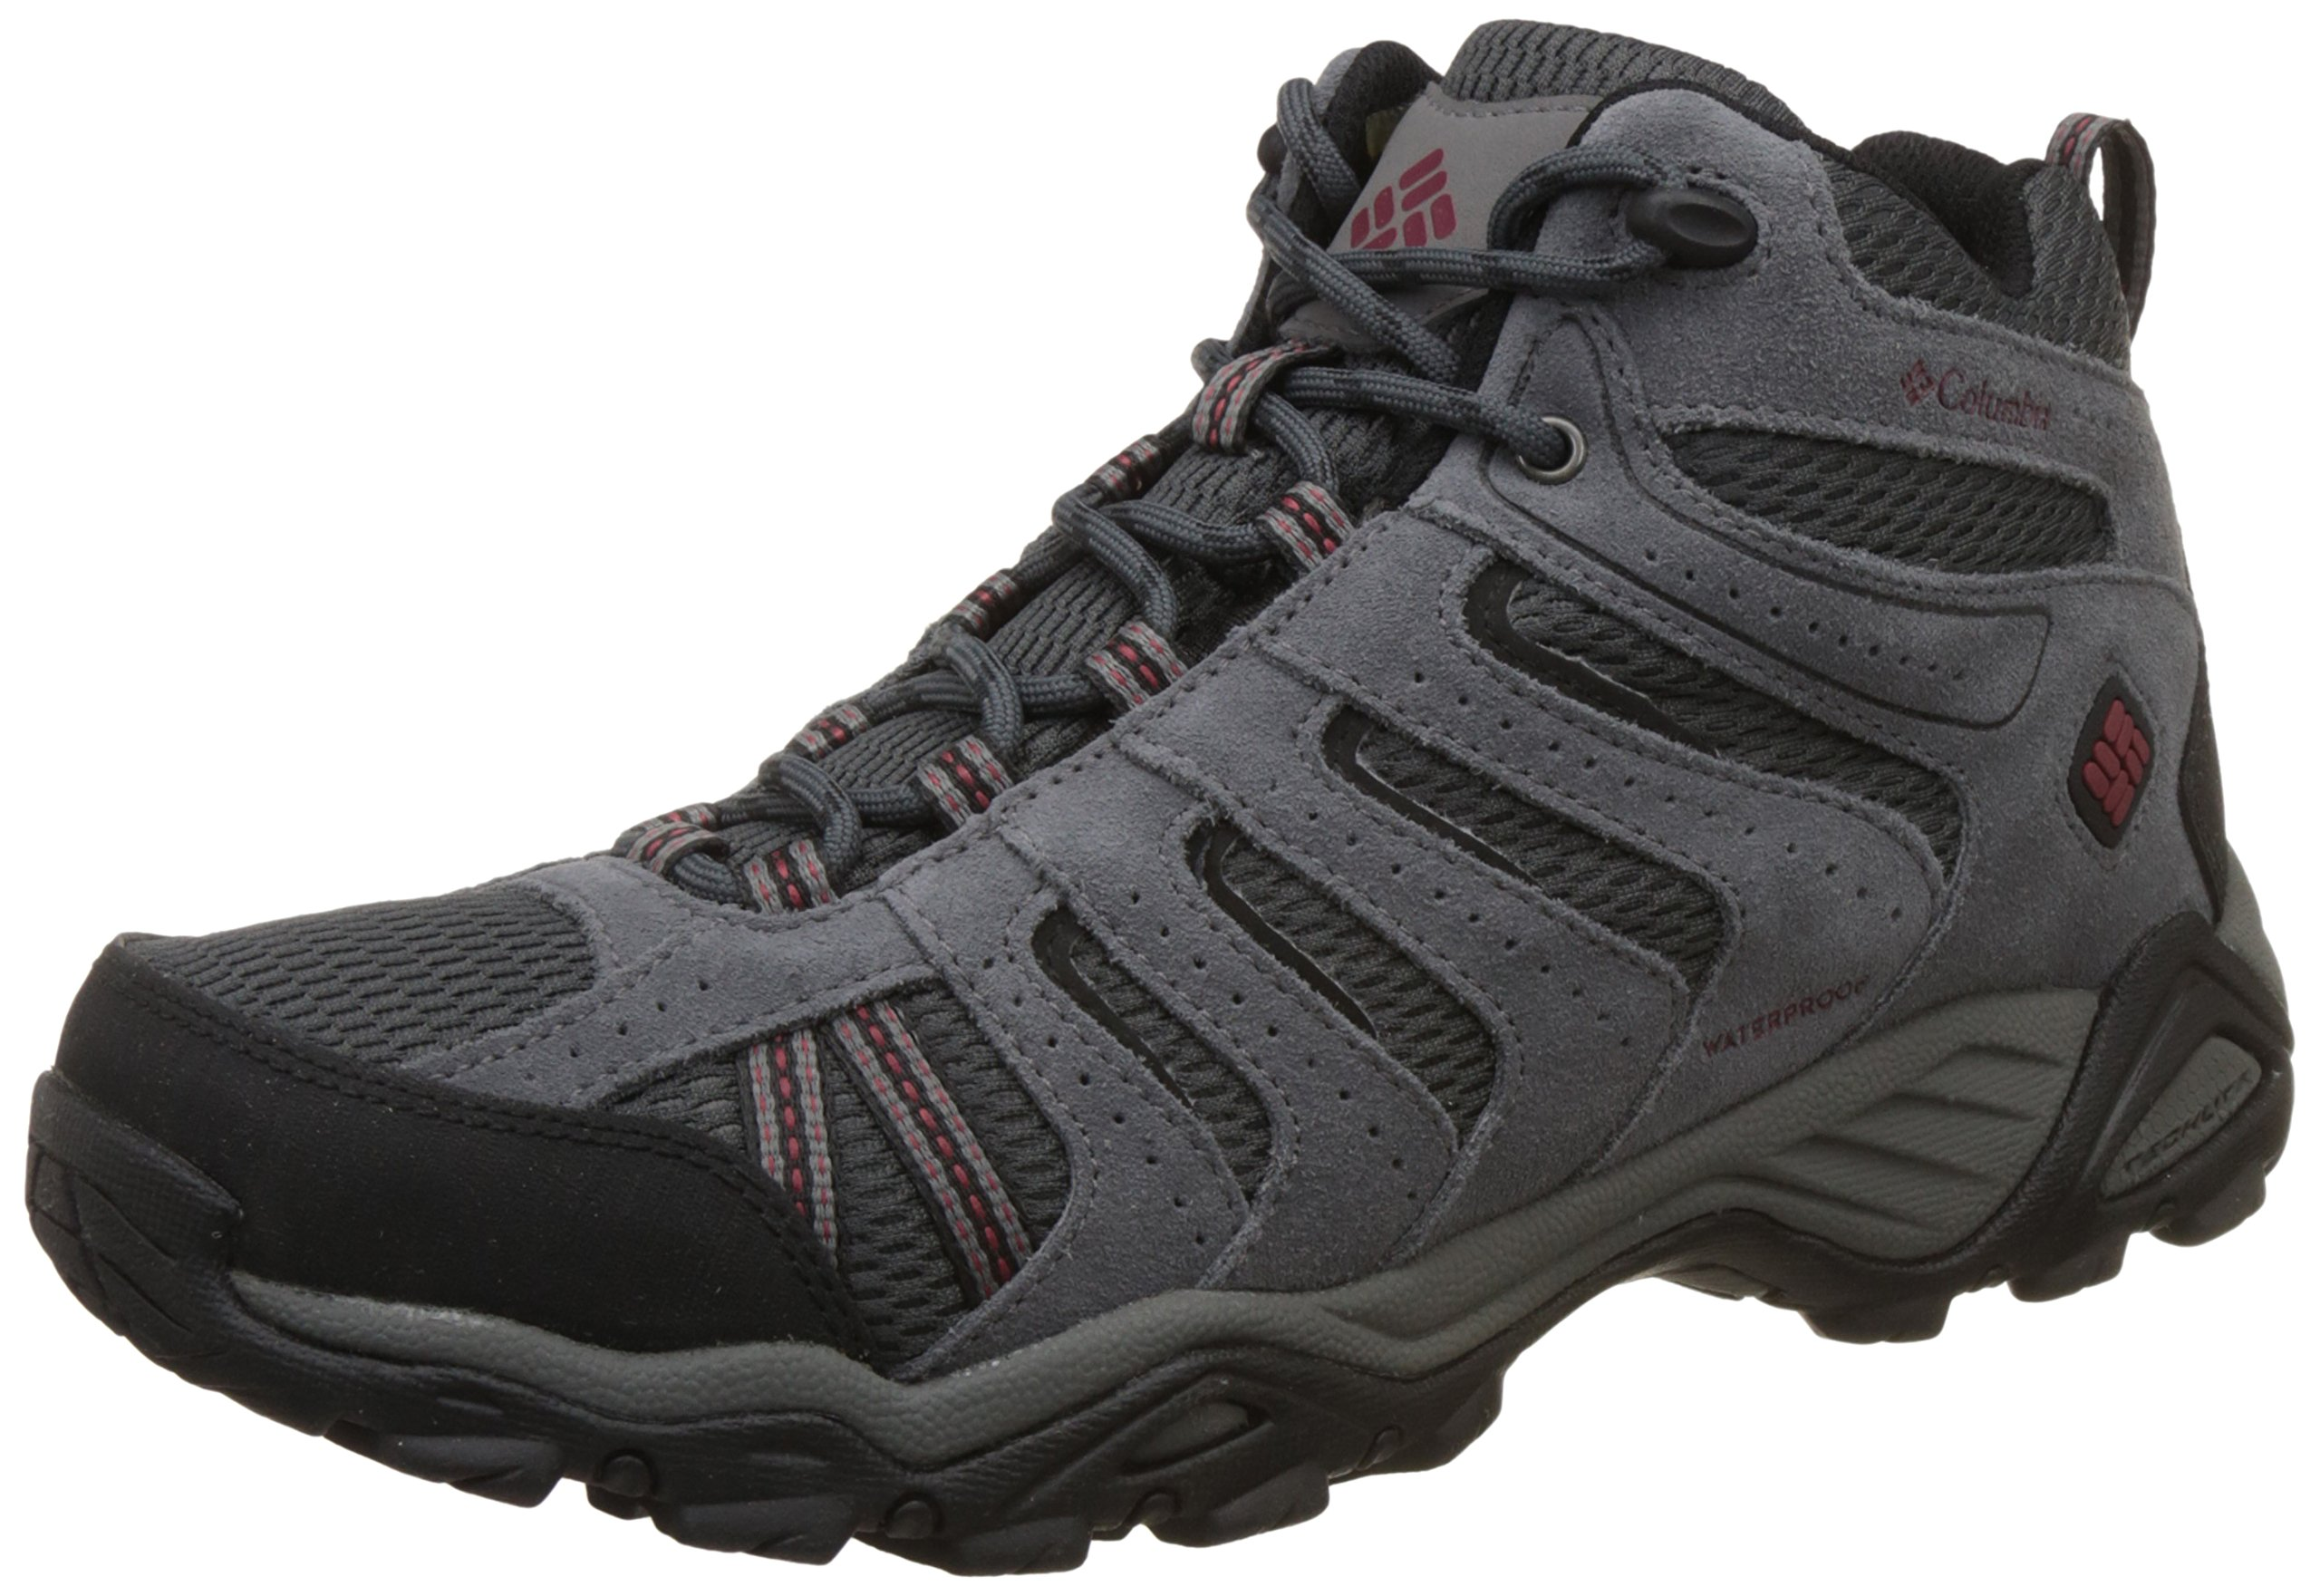 Columbia Men's North Plains Ii Waterproof Mid Hiking Boot, Dark Grey, Garnet Red, 8 D US